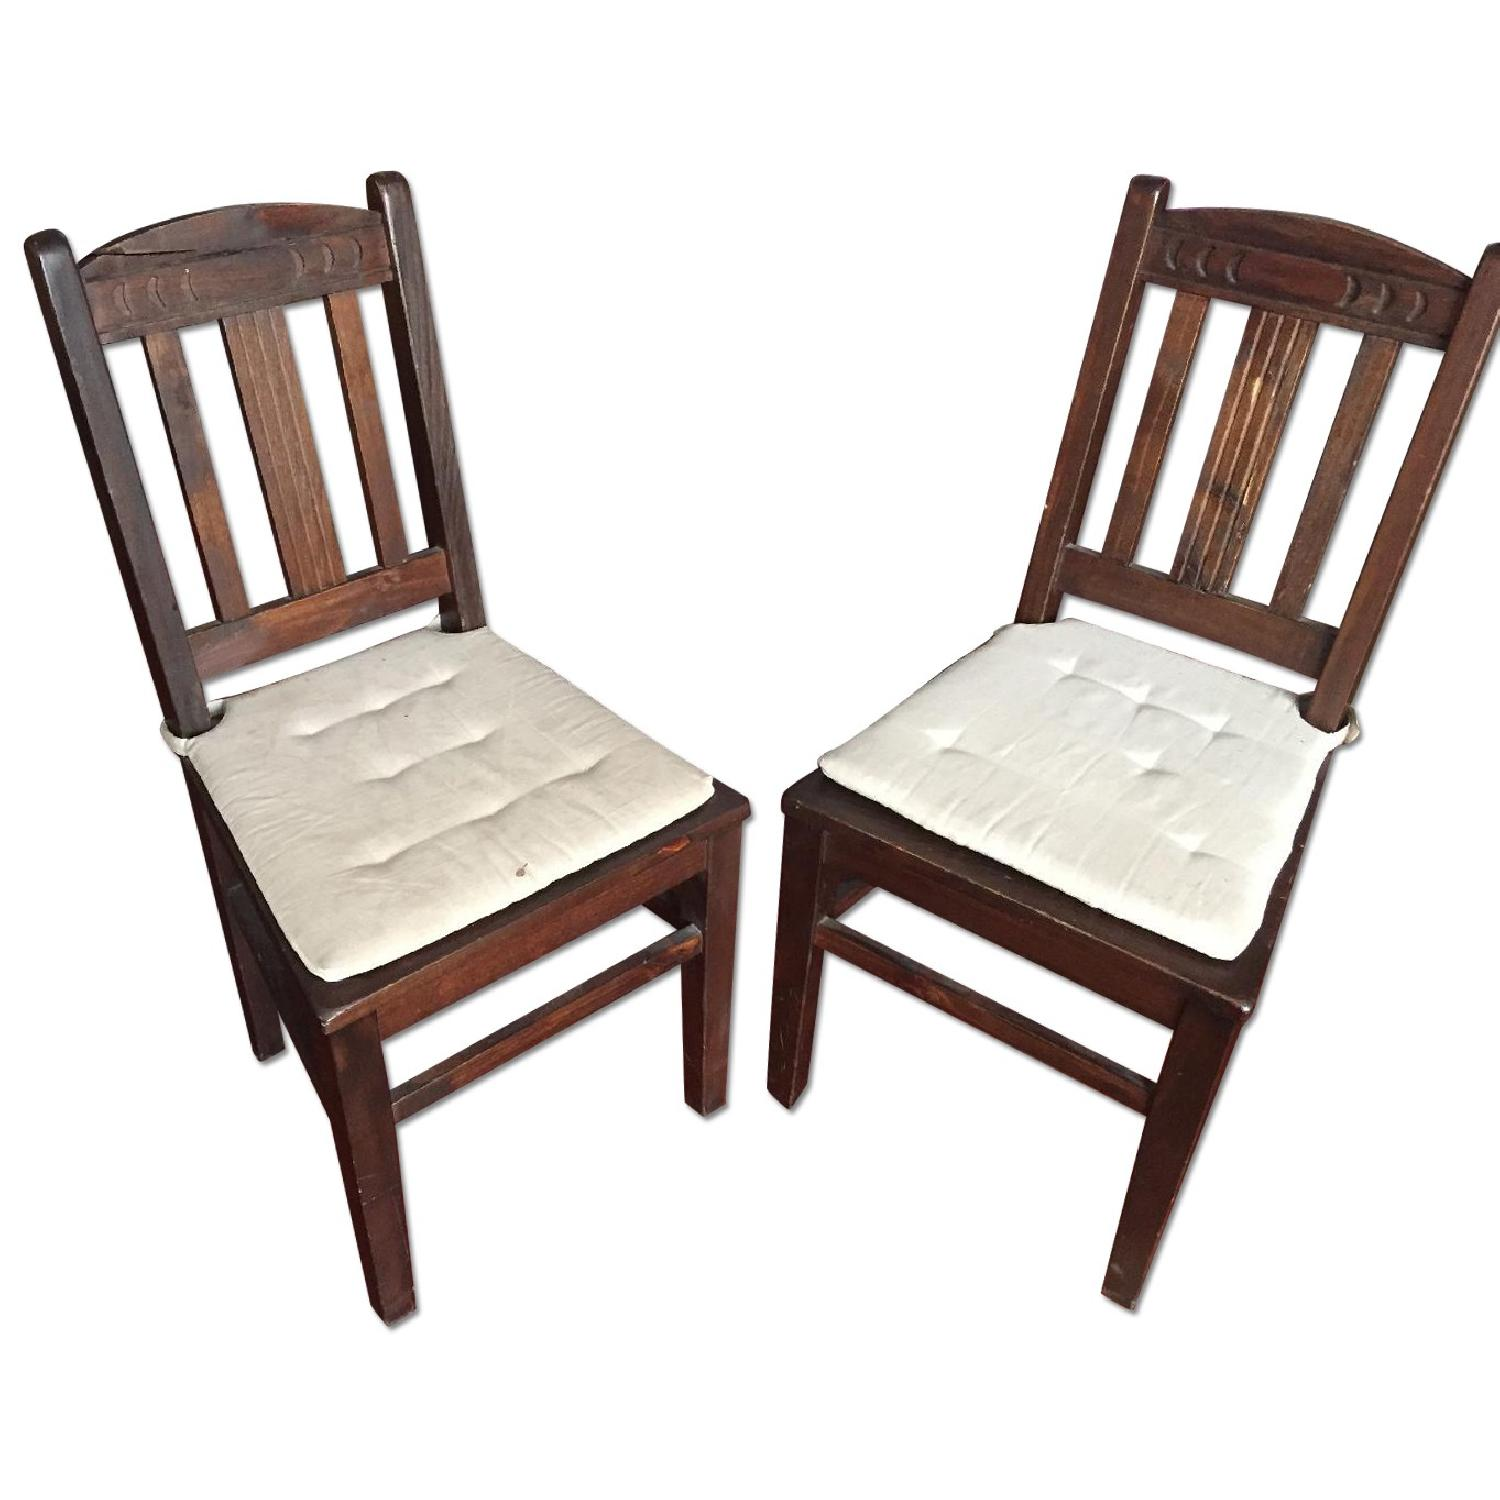 Dark Stained Wood Farm Table w/ 4 Chairs - image-5